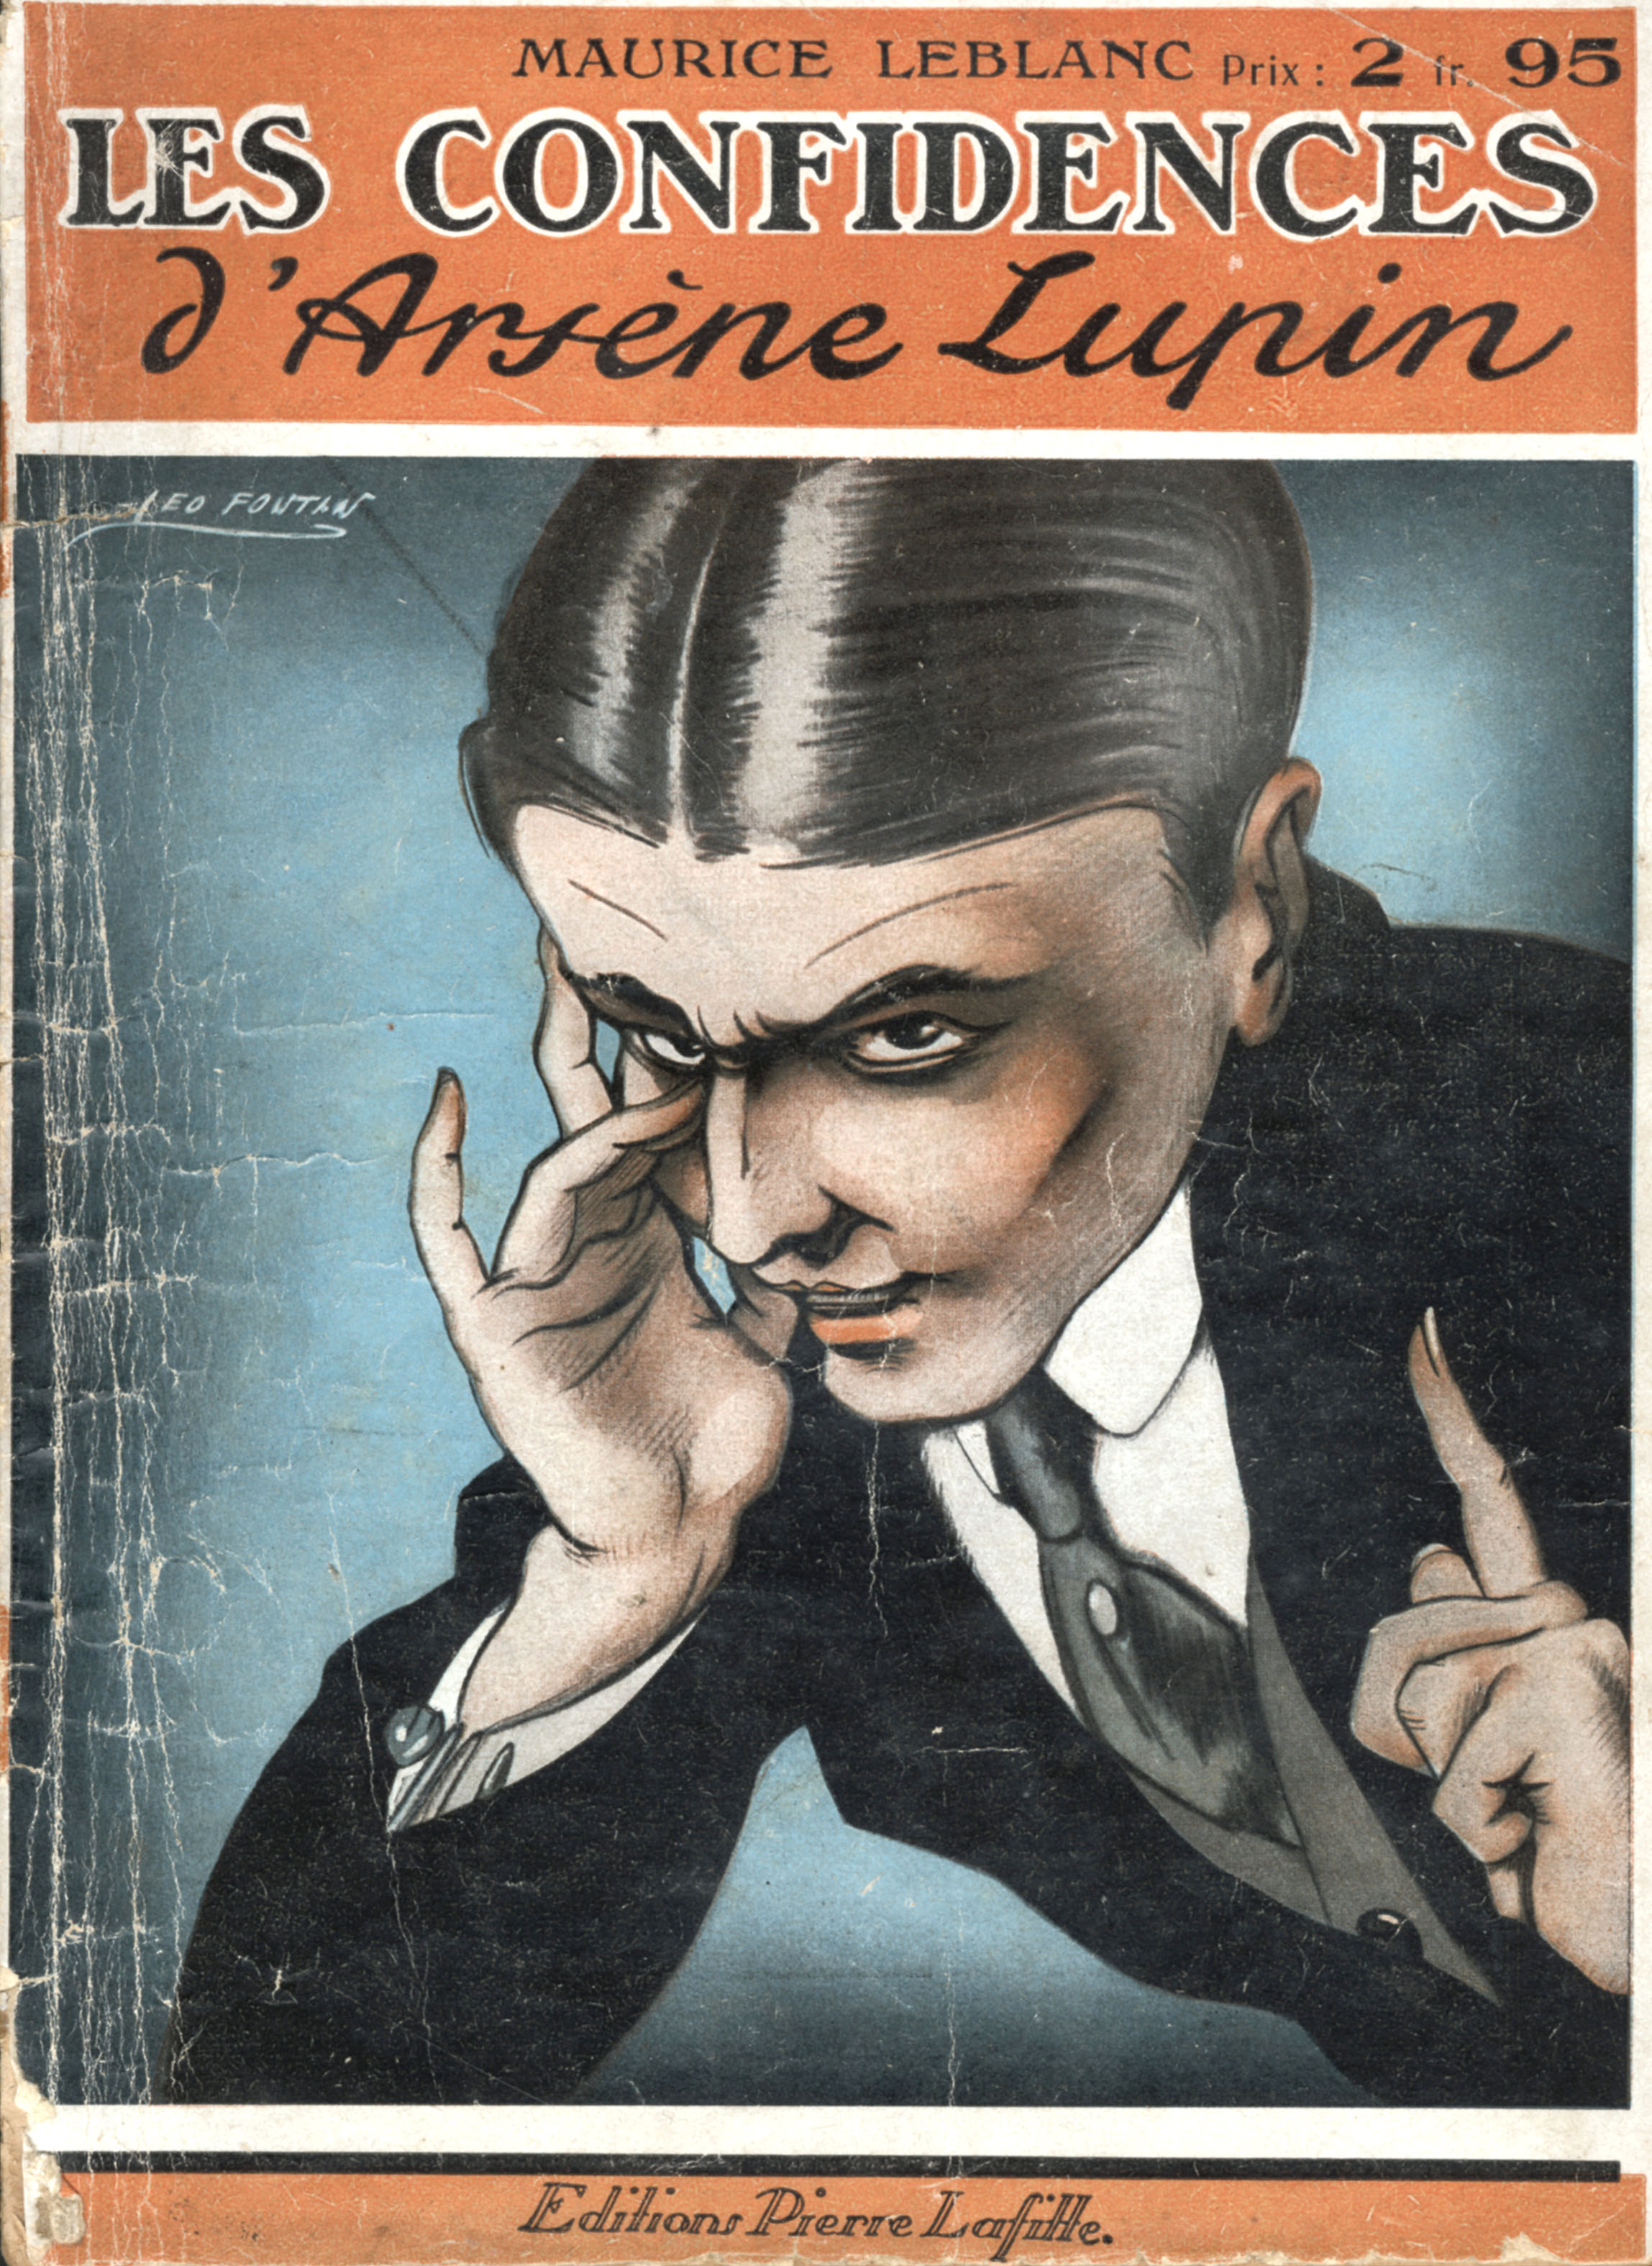 One of the many Lupin books written by author Maurice Leblanc